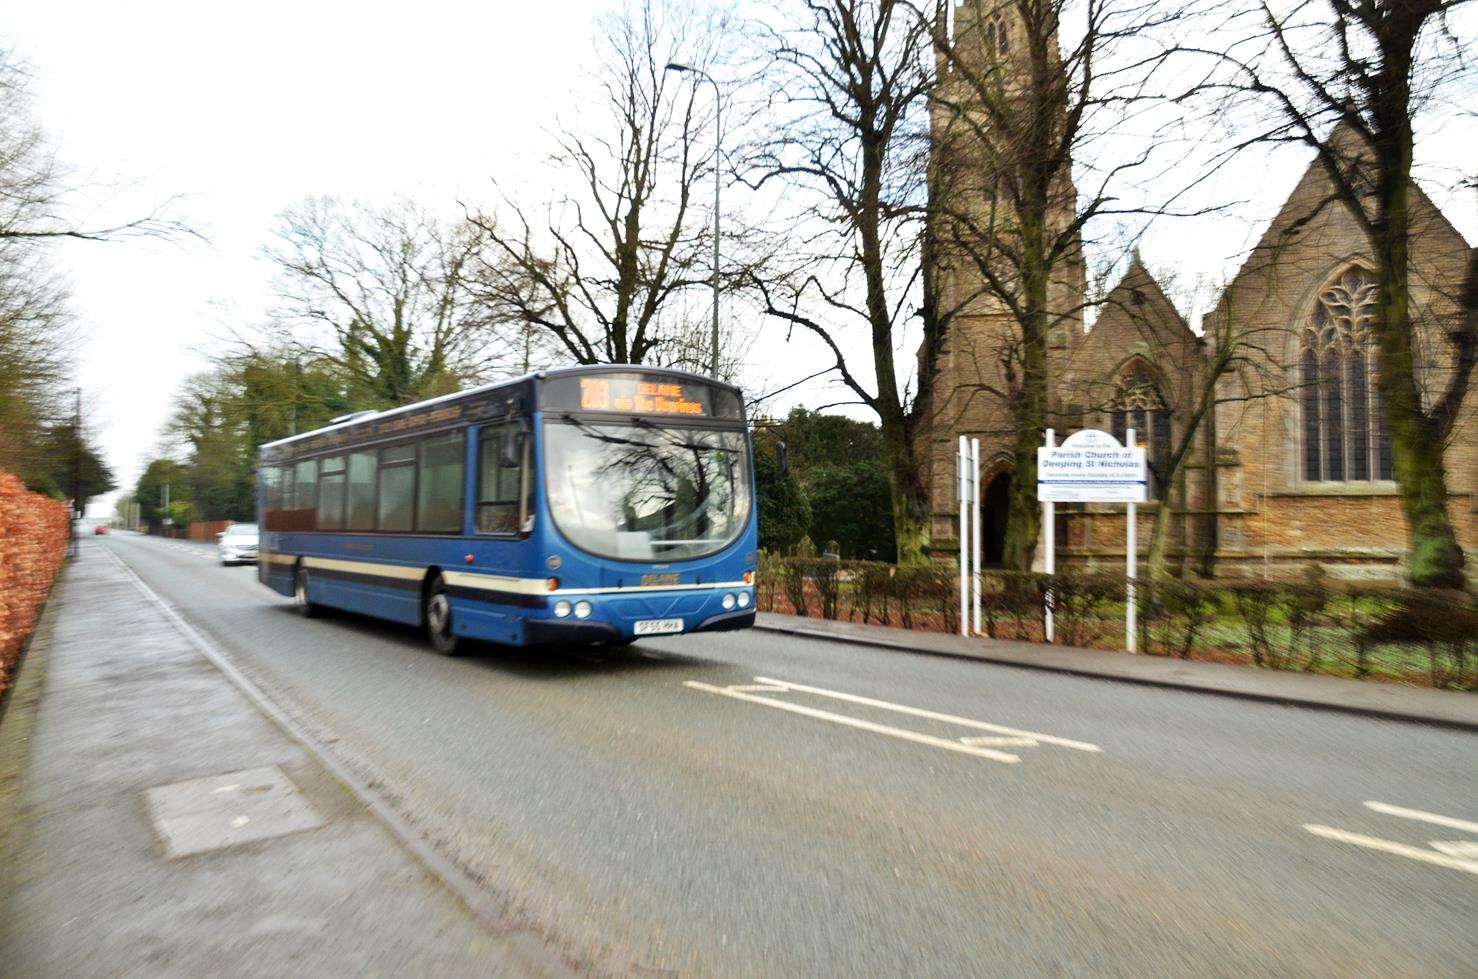 The new 203 Spalding to Stamford bus service approaches Deeping St Nicholas Parish Church. Photo (TIM WILSON): SG-250119-008TW.